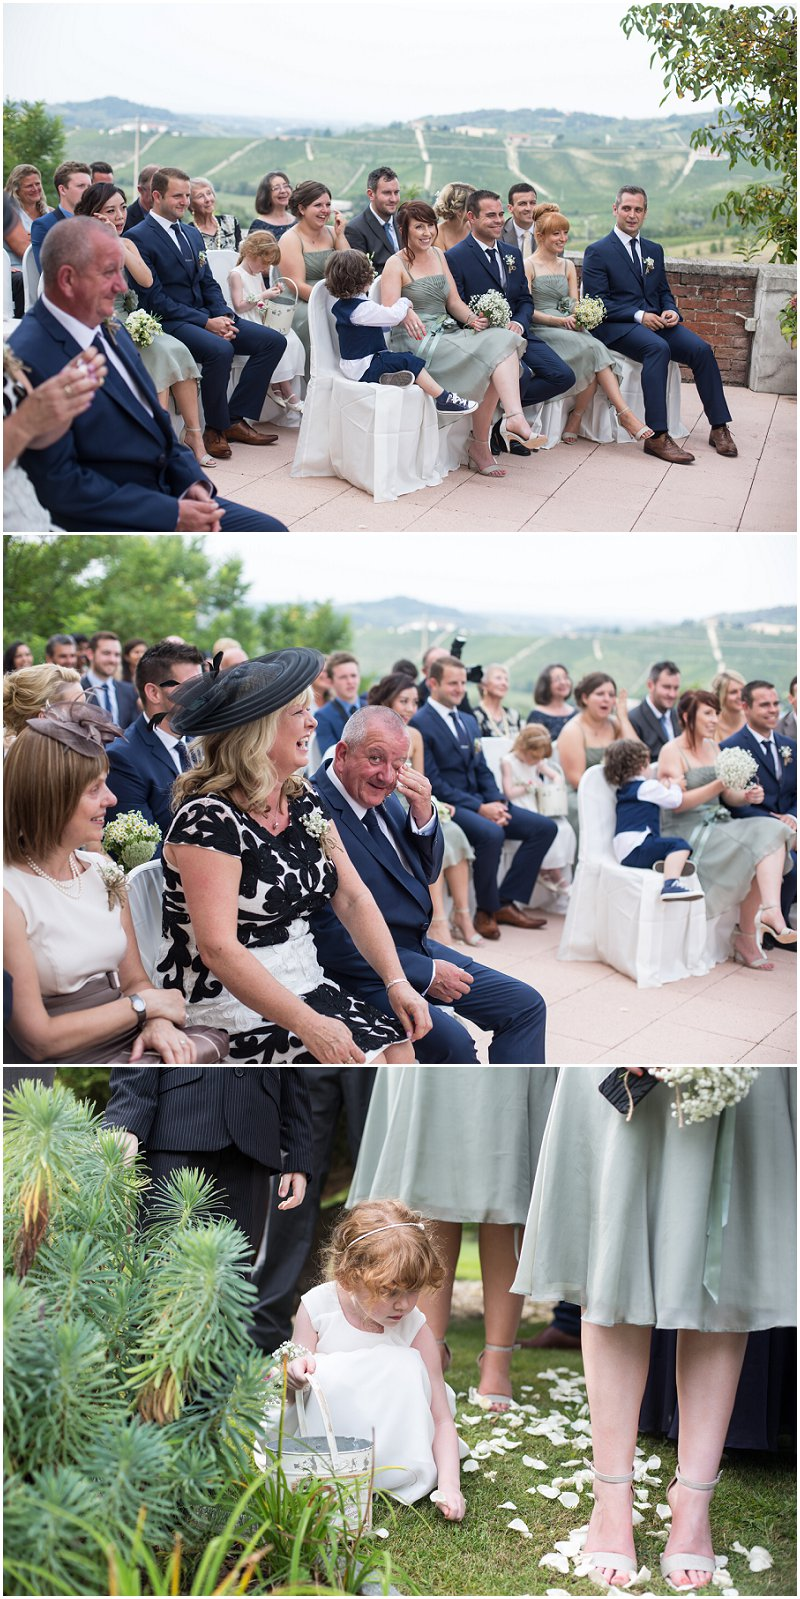 Wedding guests during ceremony Piedmont Italy